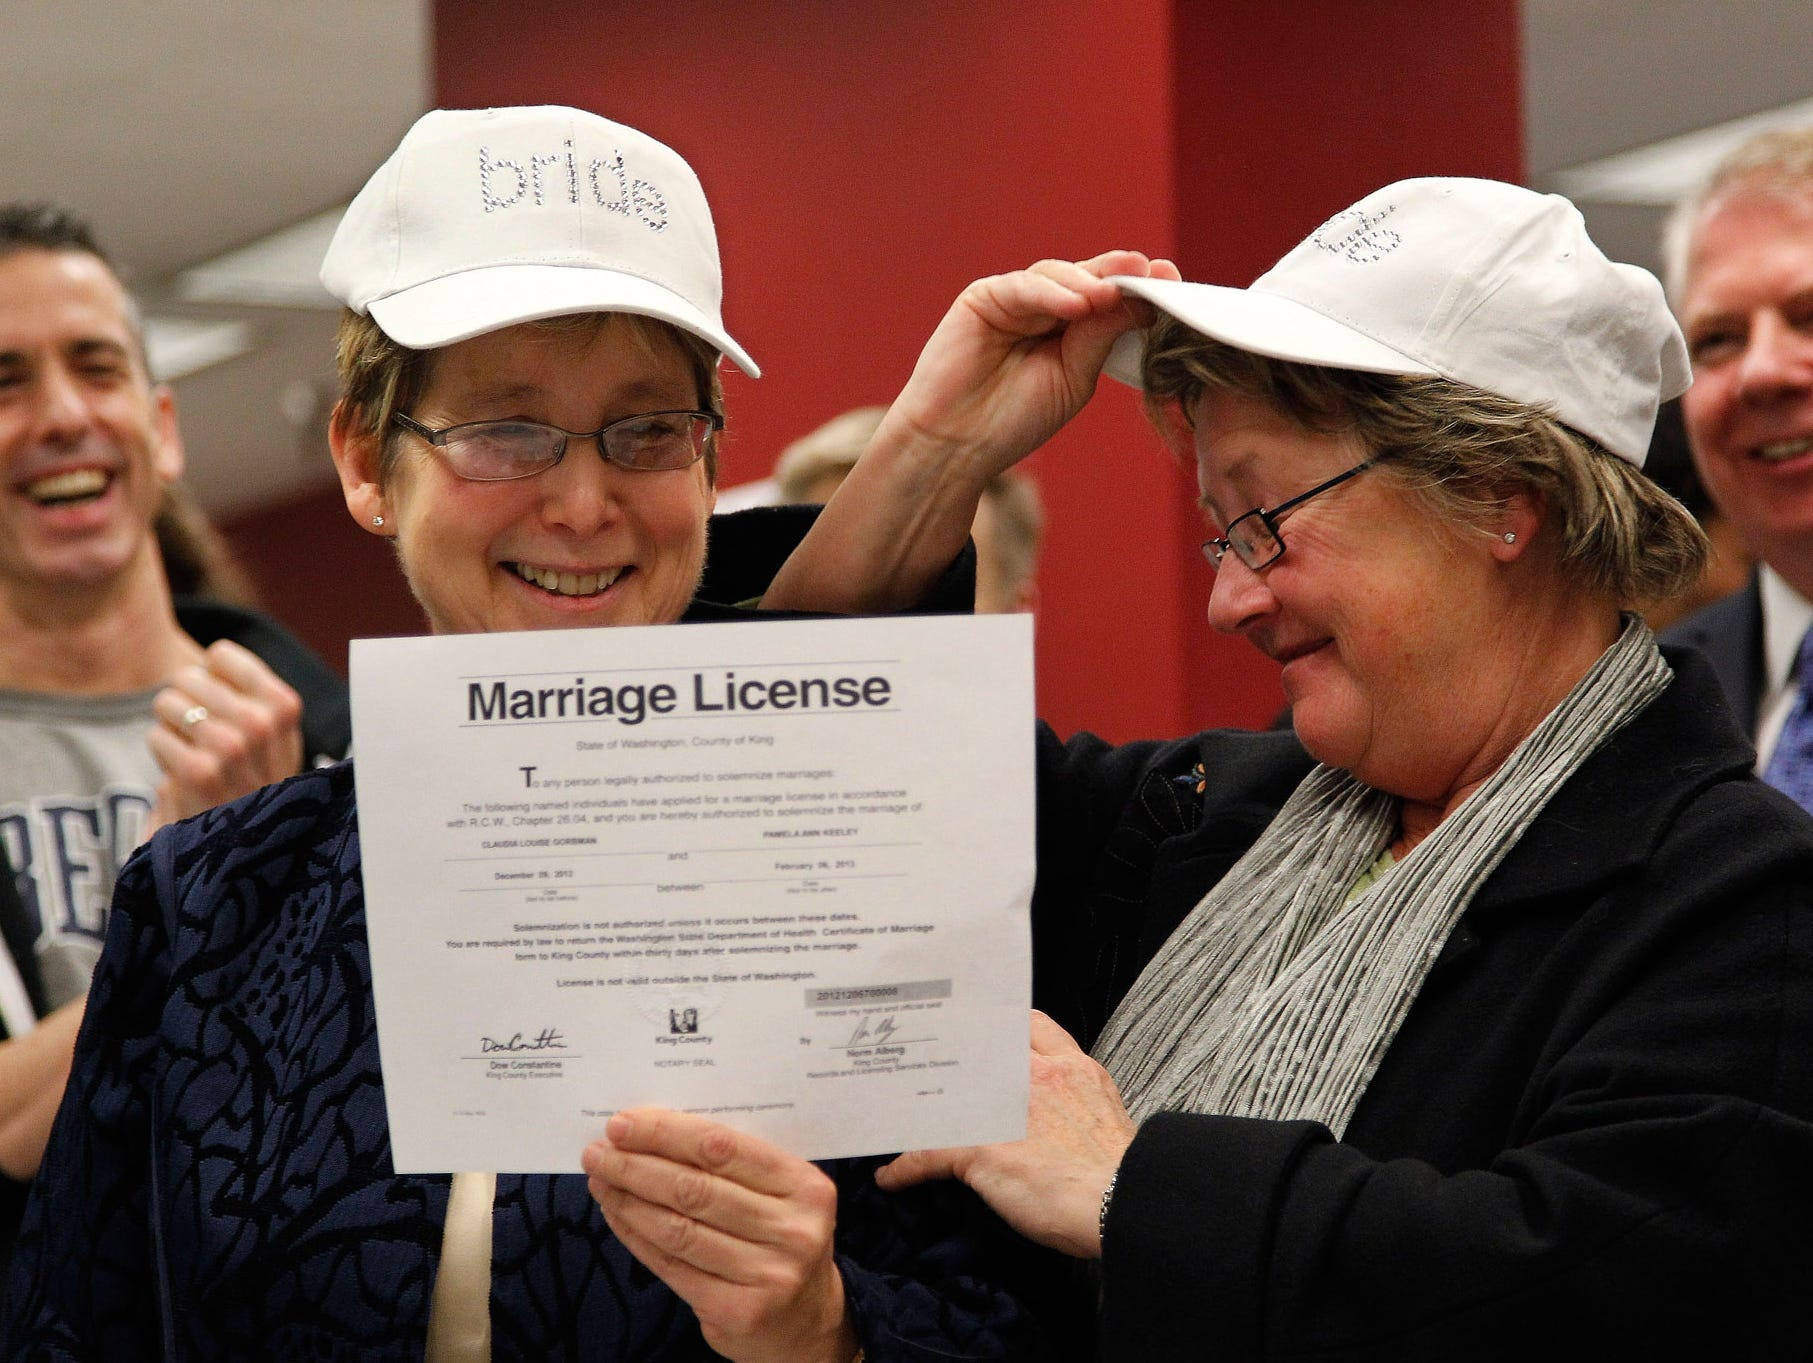 Marriage license for same sex marriages